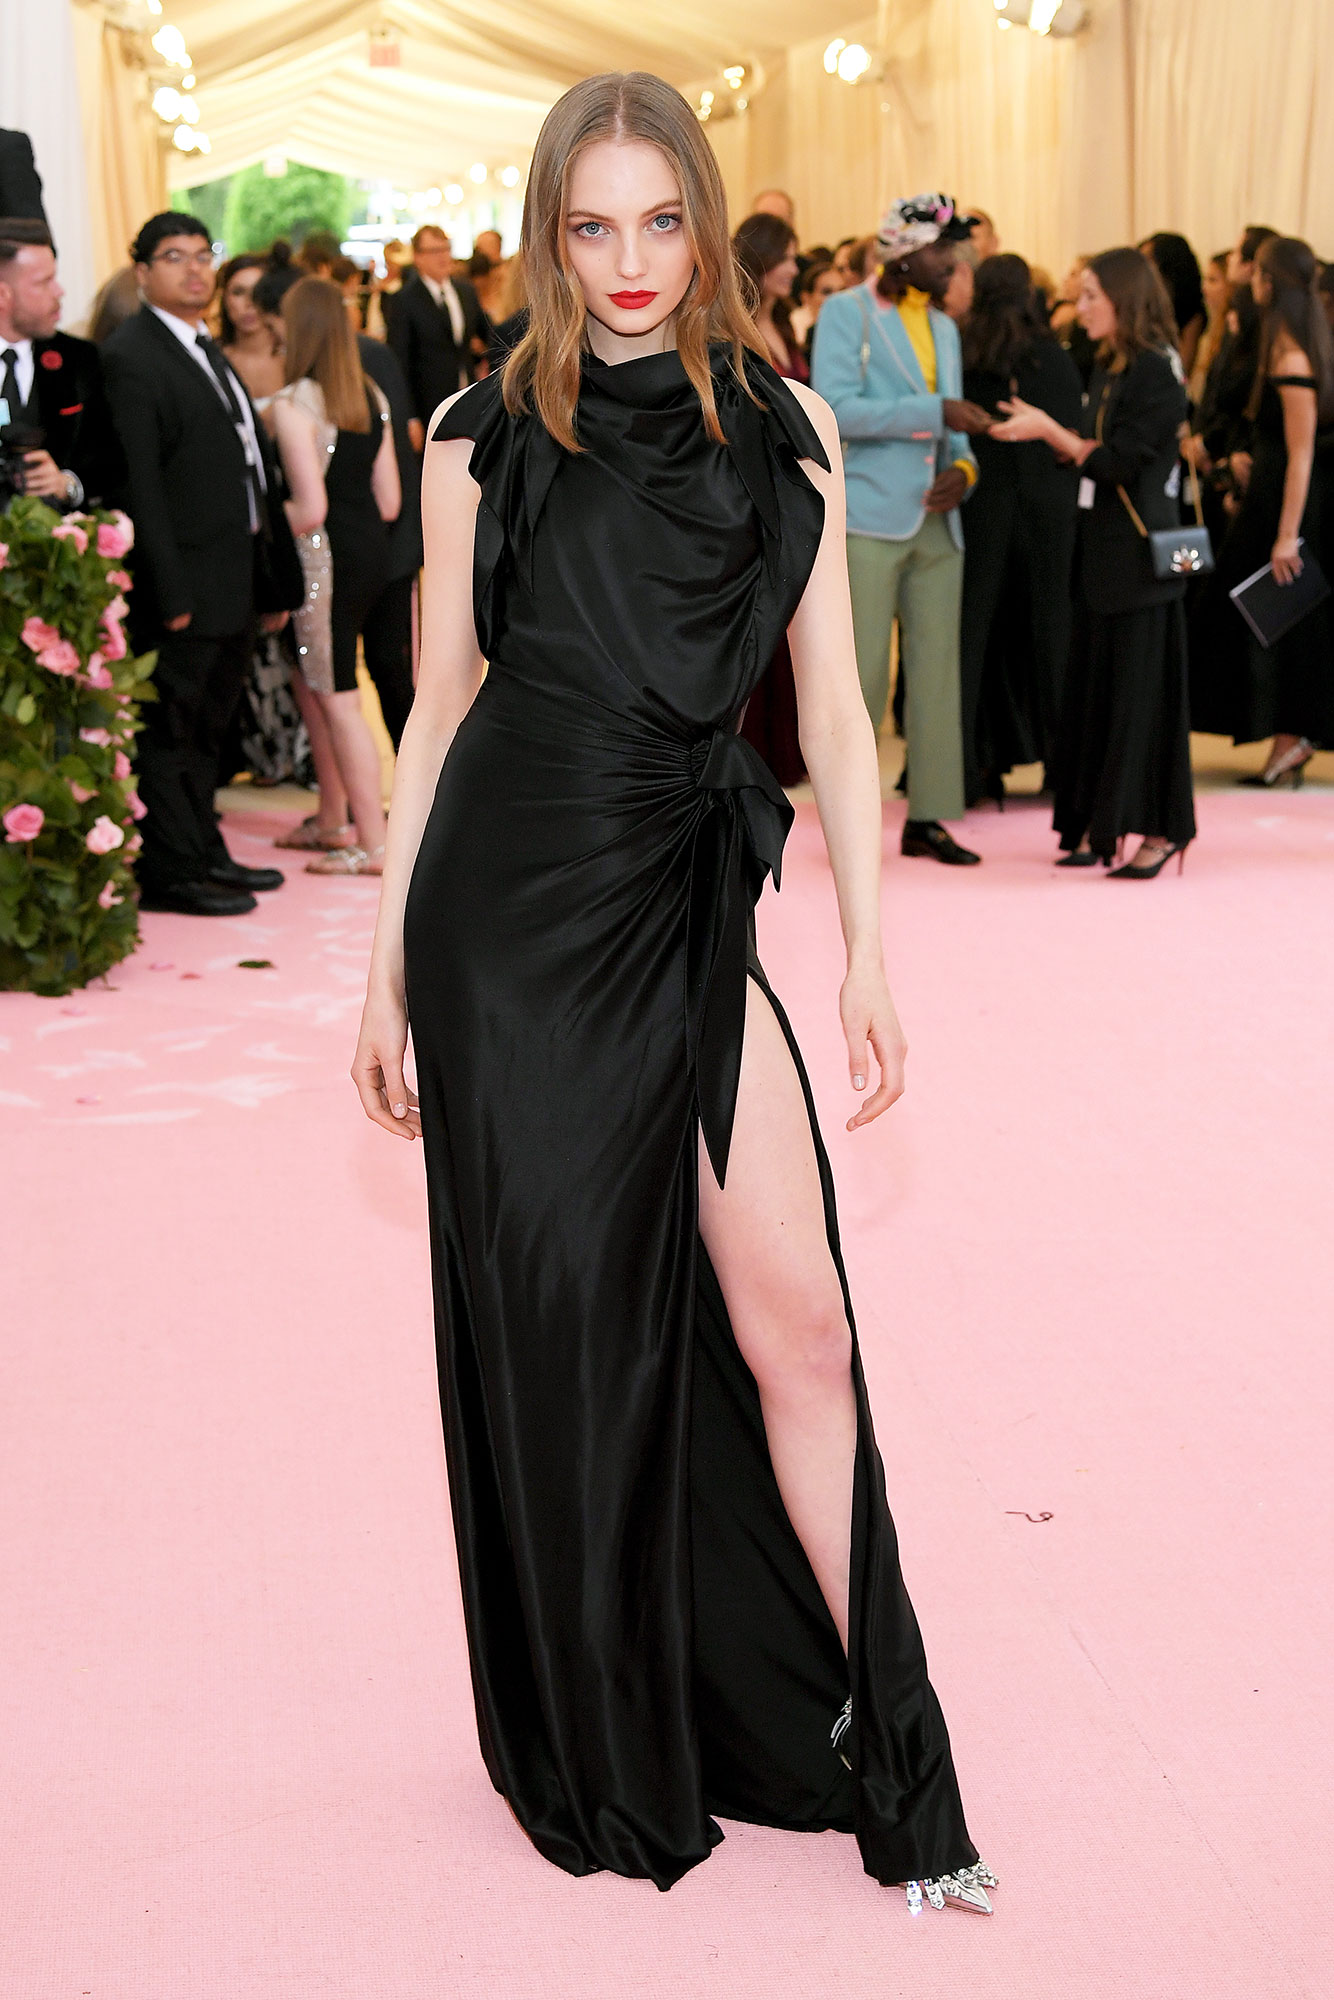 Fran Summers met gala - Wearing a black sleeveless gown with a thigh-high slit.